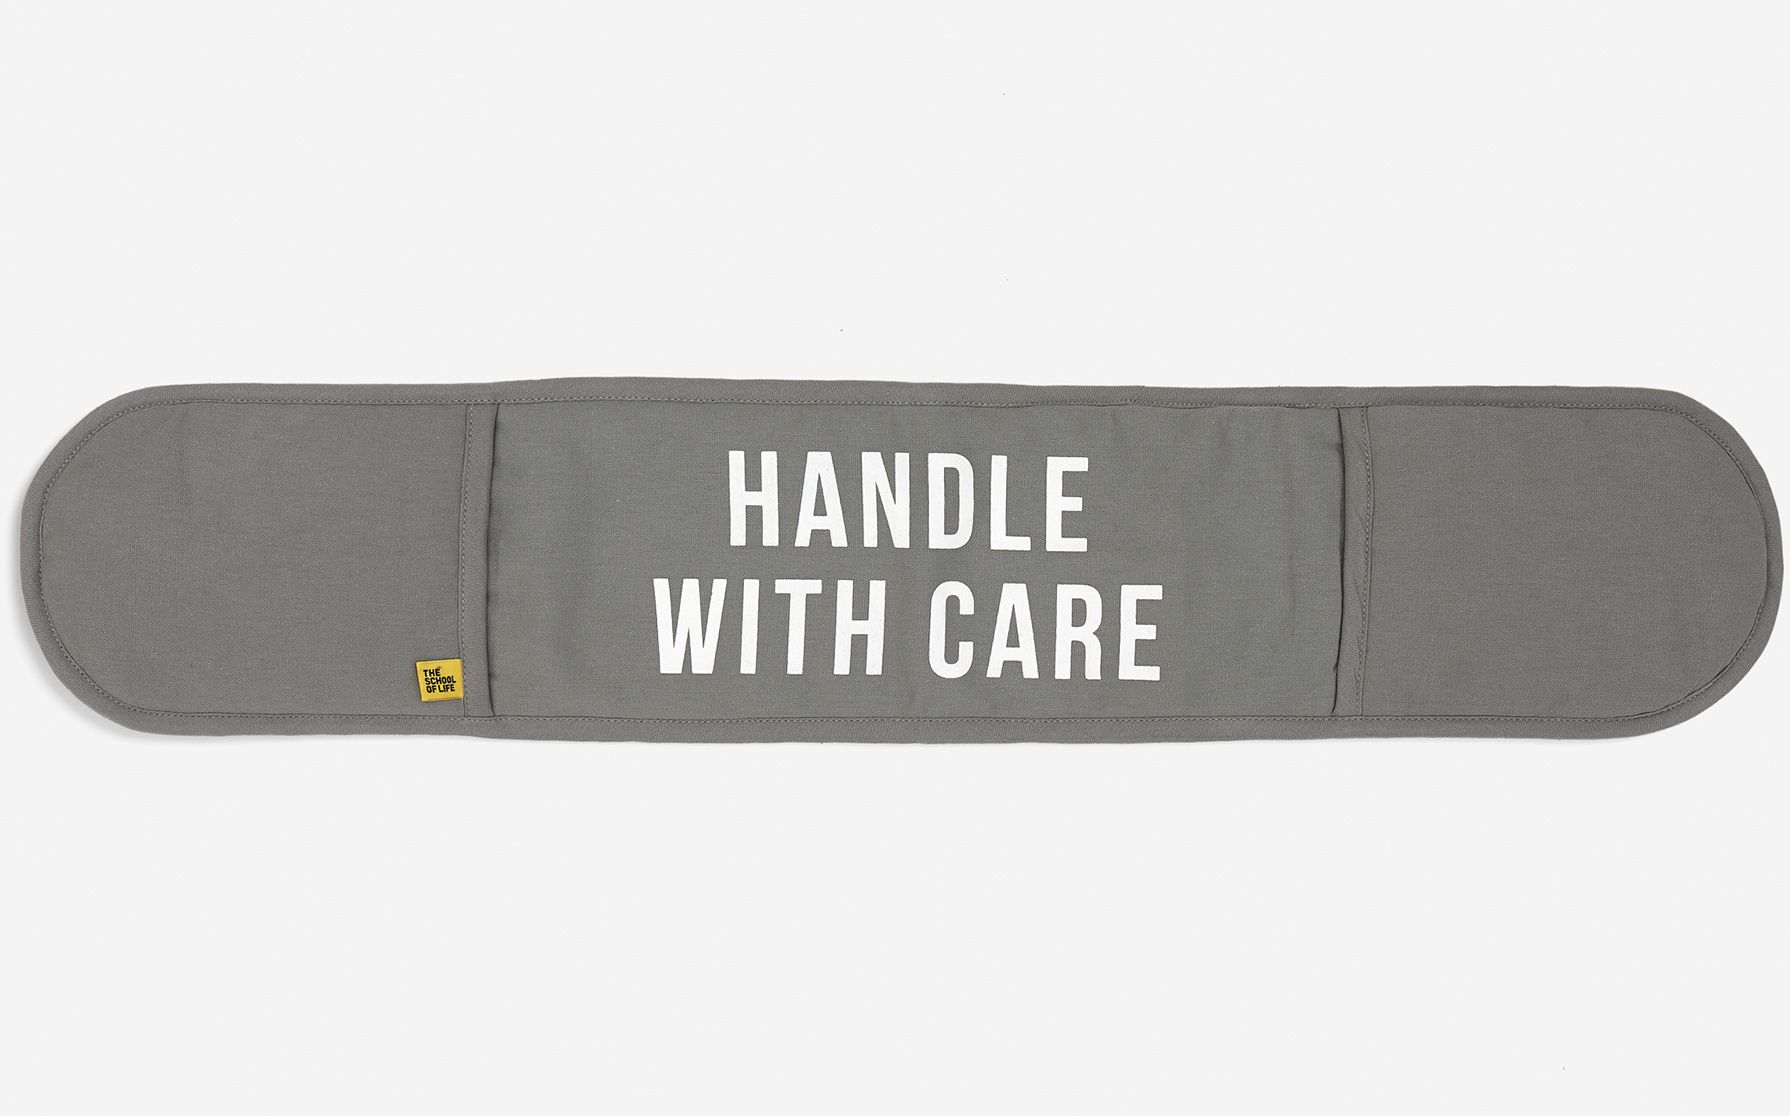 Handle with care oven glove